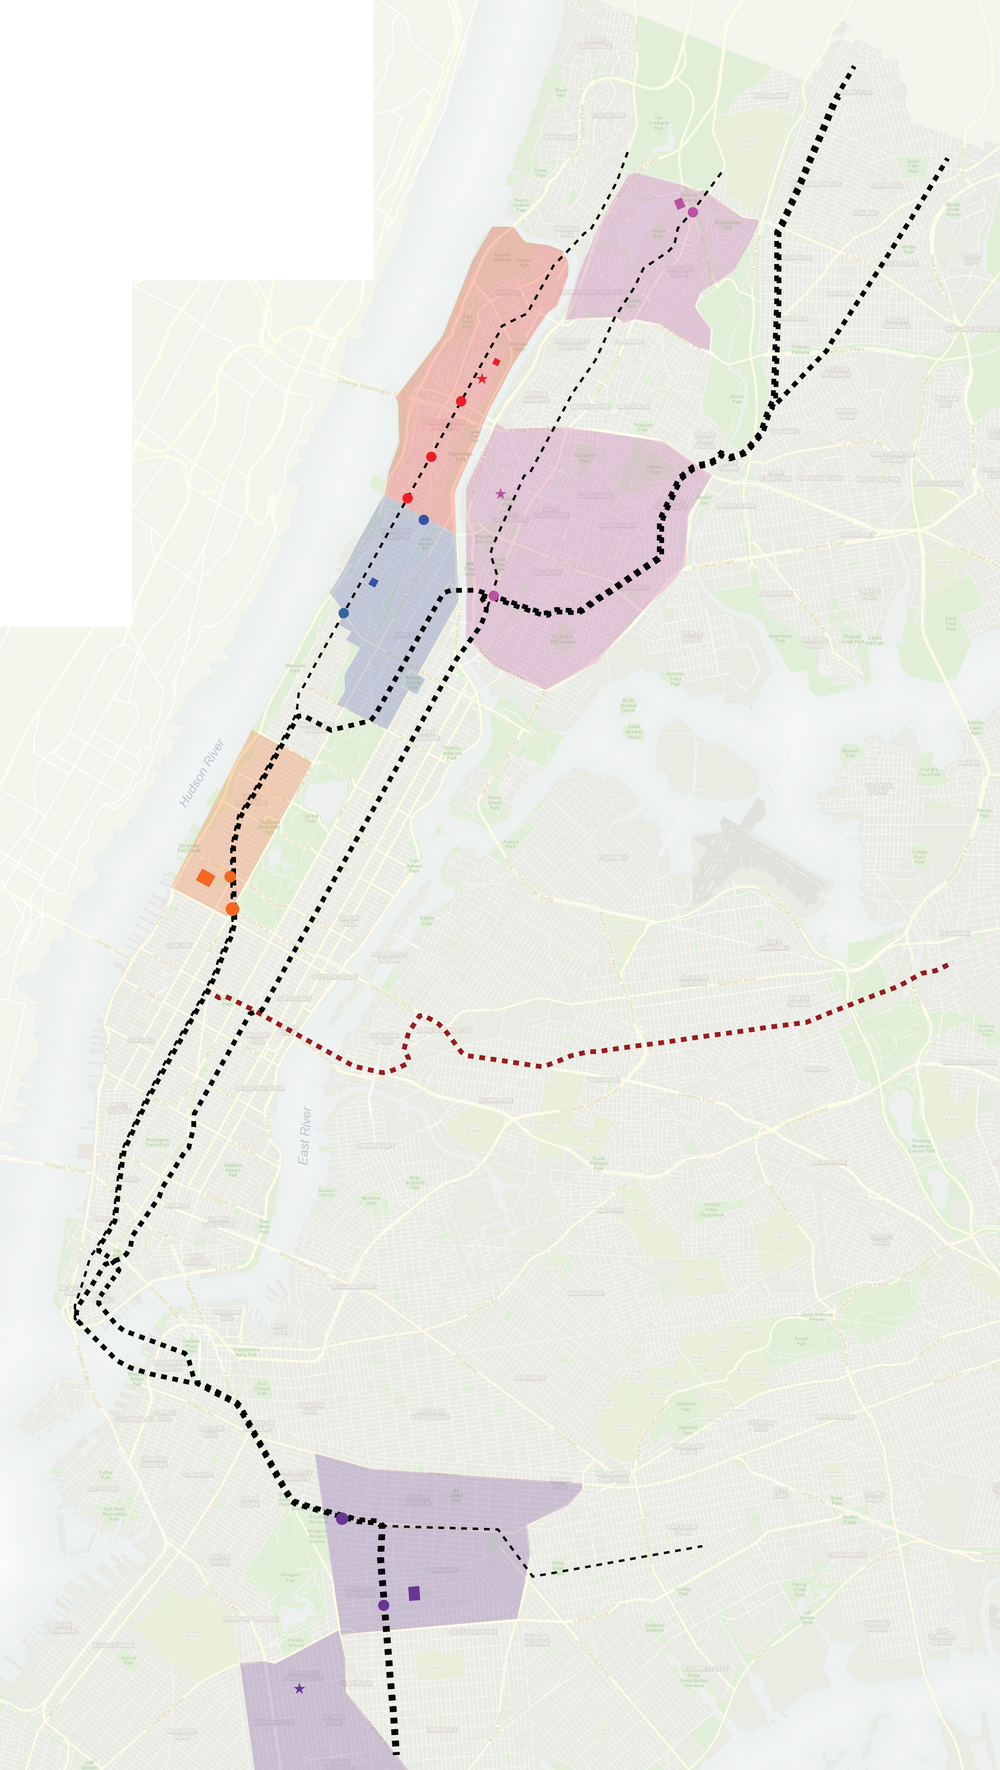 3.2. Addition of Queens line to Graffiti City